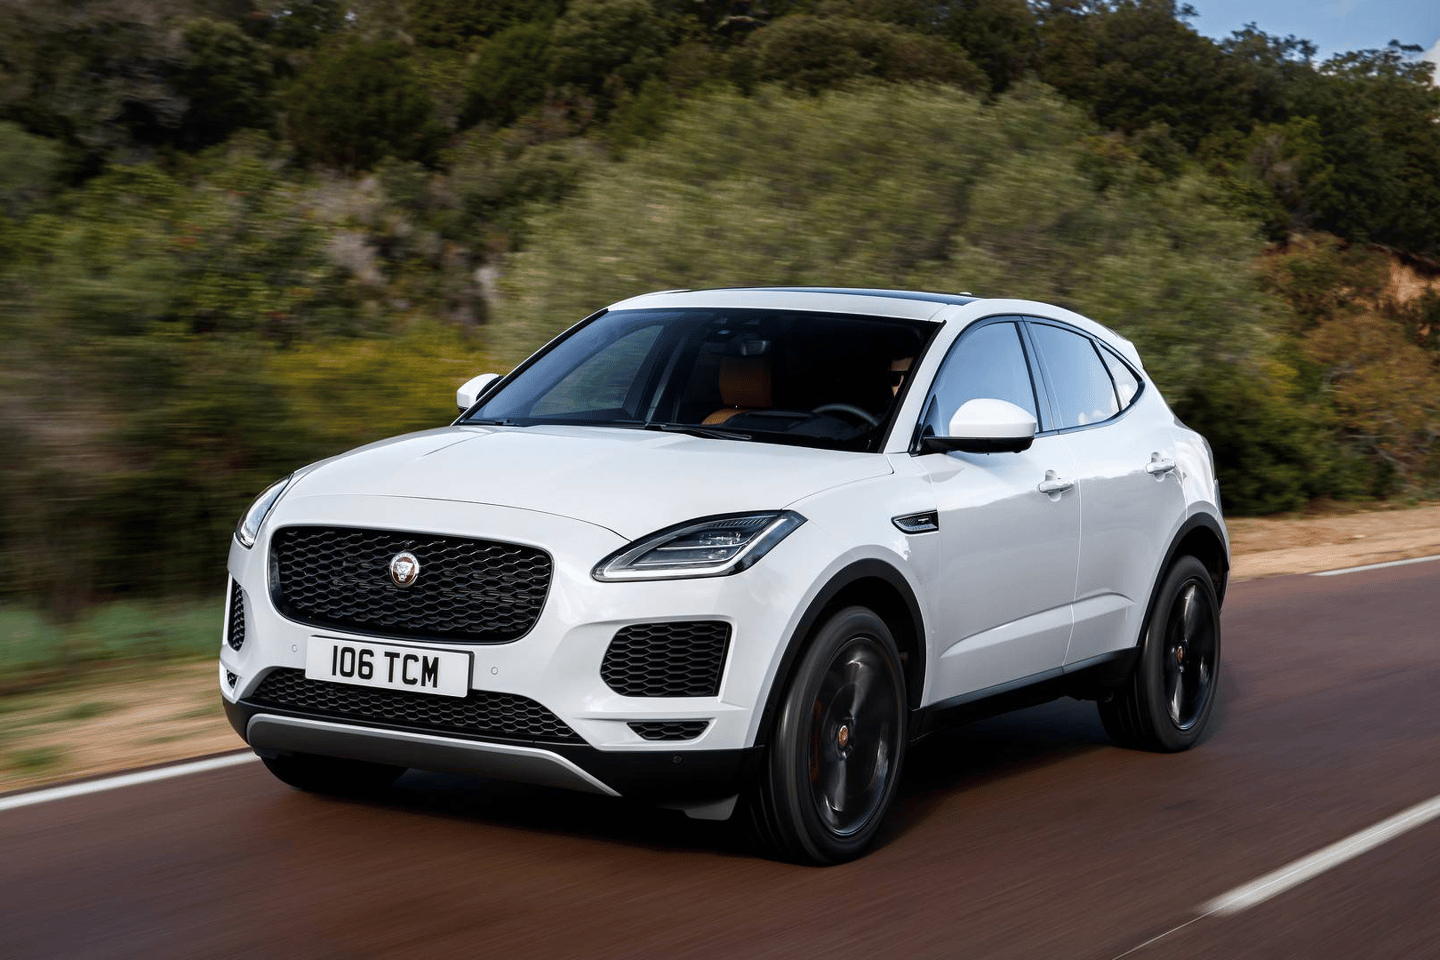 Jaguar has always been one of the poorest performing marques in the IQS award, as can be seen from the overall results charted for 2017, 2018 and 2019. This year the company began moving off the bottom of the ladder and one of its cars, the Jaguar E-Pace compact SUV, received the marque's first-ever model-level award. The Jaguar E-Pace took the gong in the Small Premium SUV category with a score of 159 PP100, ahead of Lexus UX and the BMW X2.